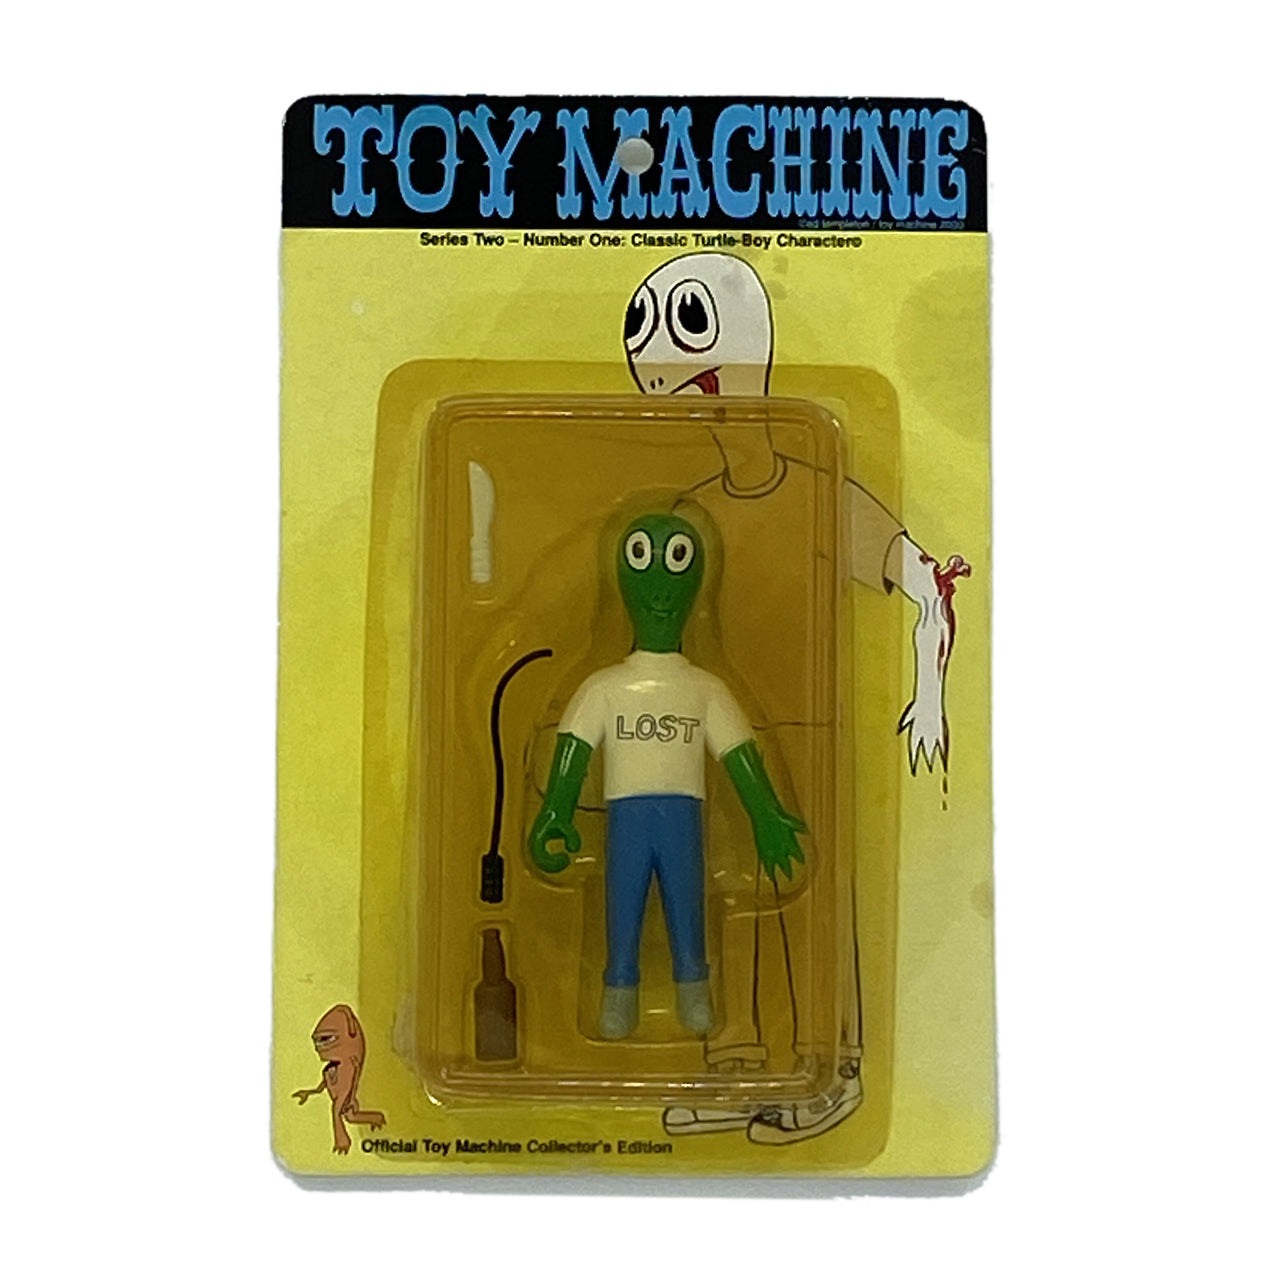 2000 TOYMACHINE 'TURTLE BOY' ACTION FIGURE